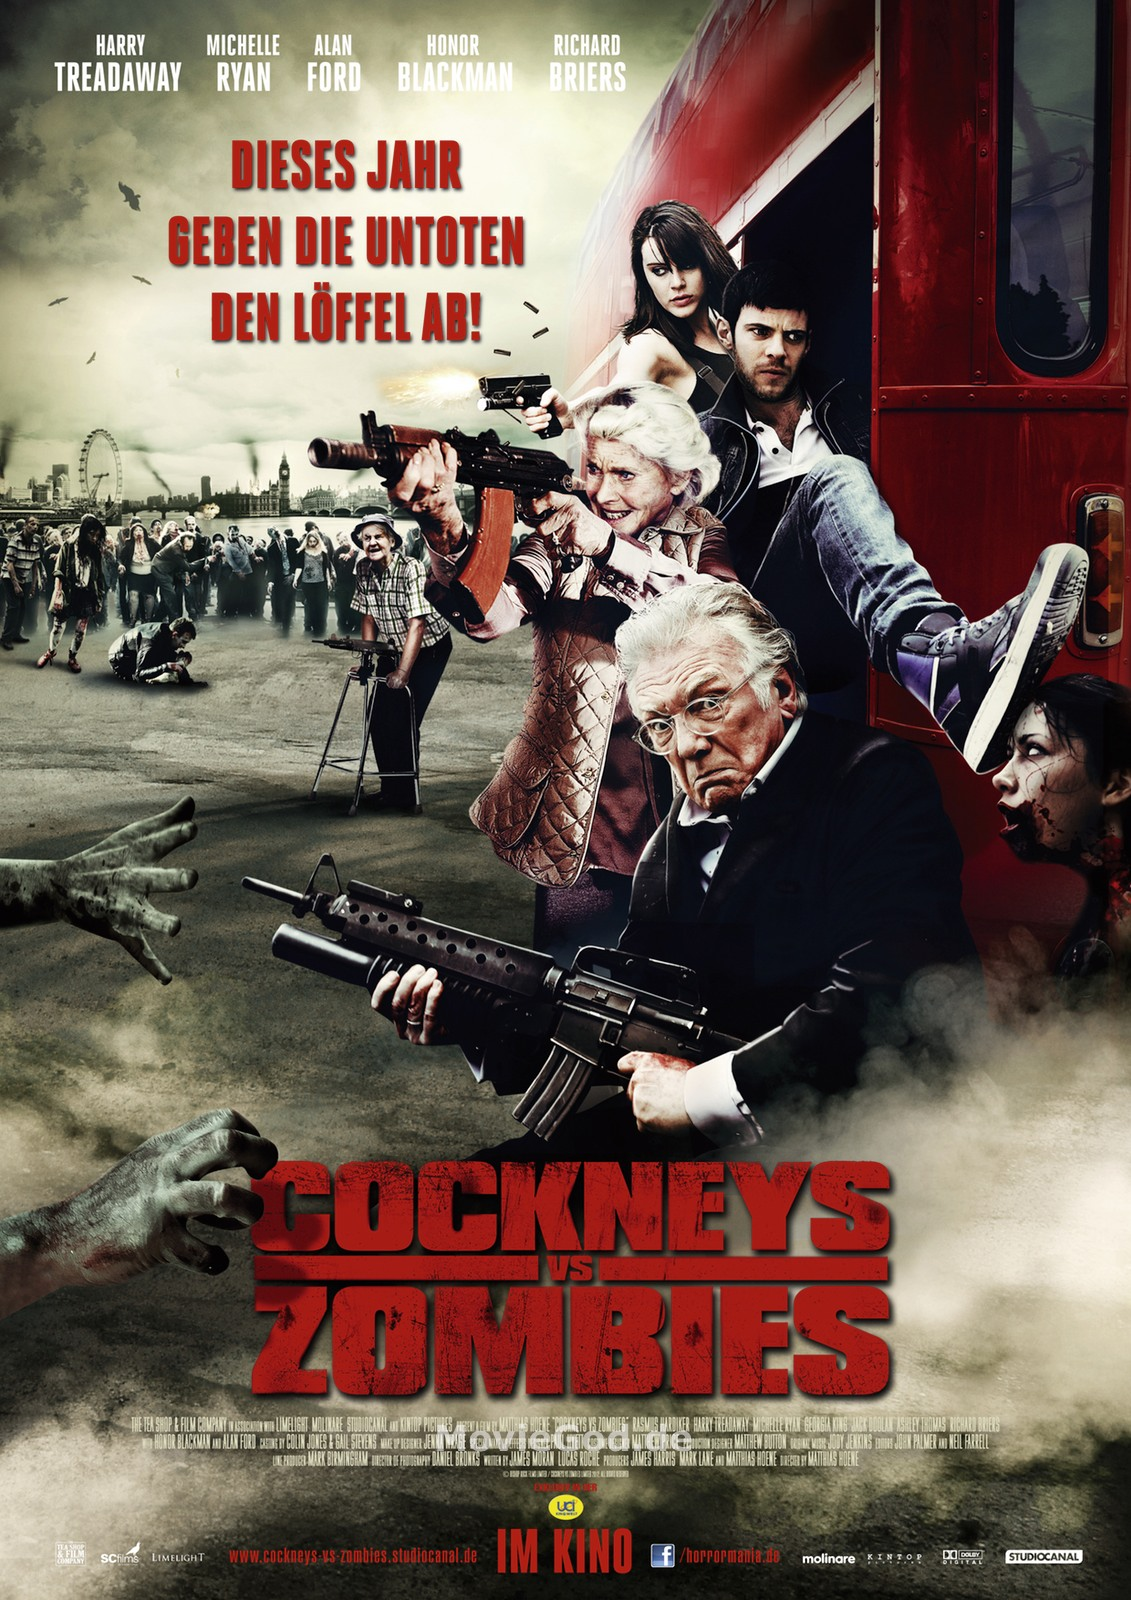 Movie Review: Cockneys VS Zombies – The East End Has Never Been So Bloody